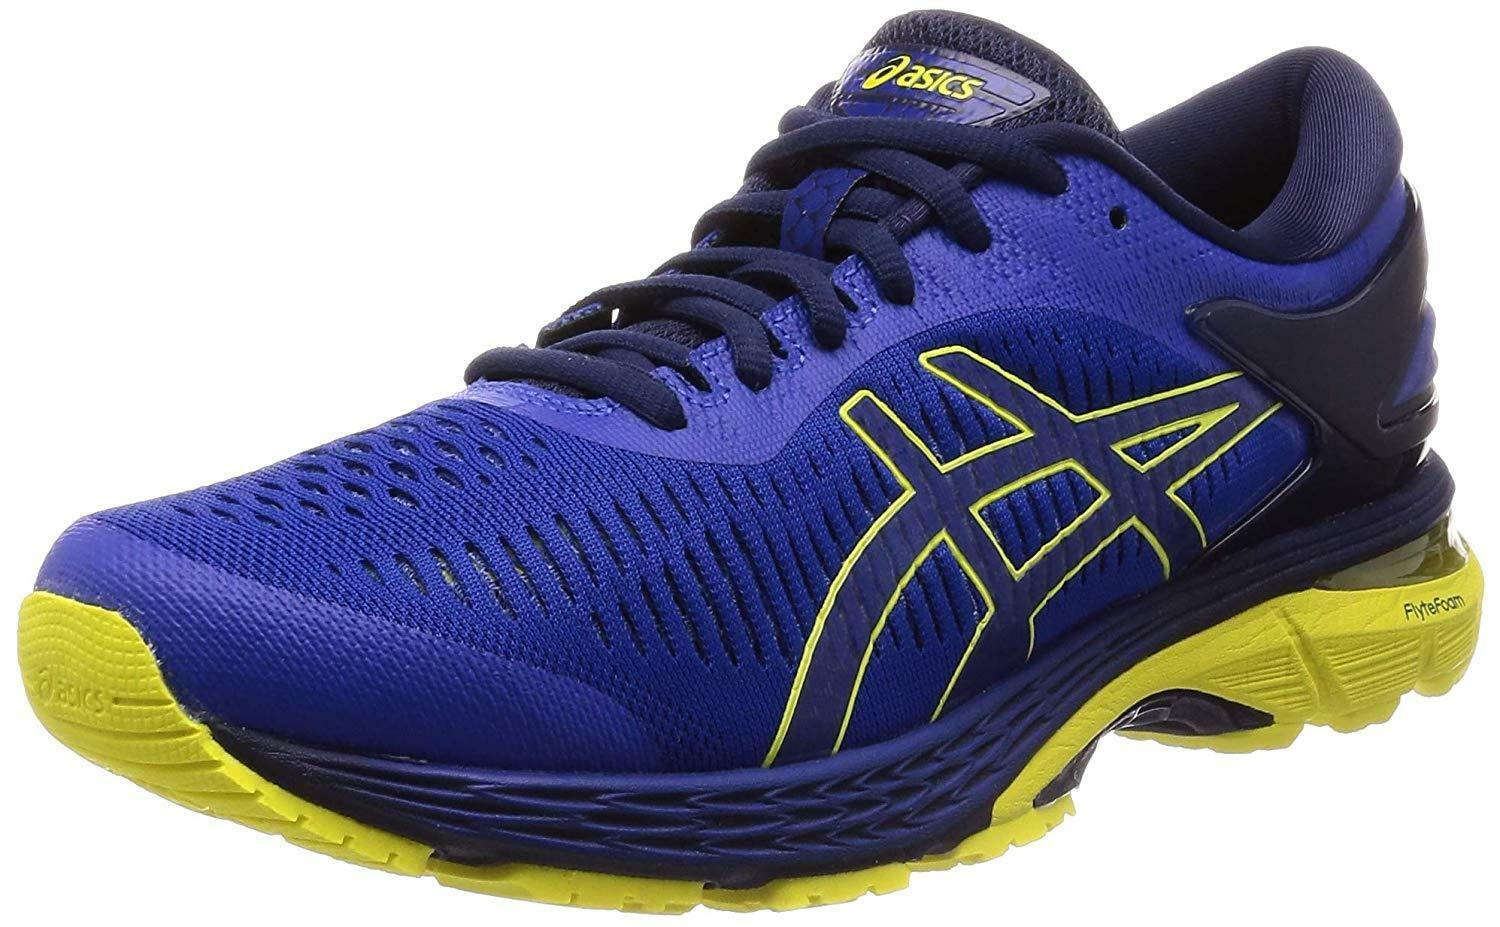 ASICS Men's Running shoes GEL-KAYANO 25 ASICS bluee 1011A019 US9.5(27.5cm)